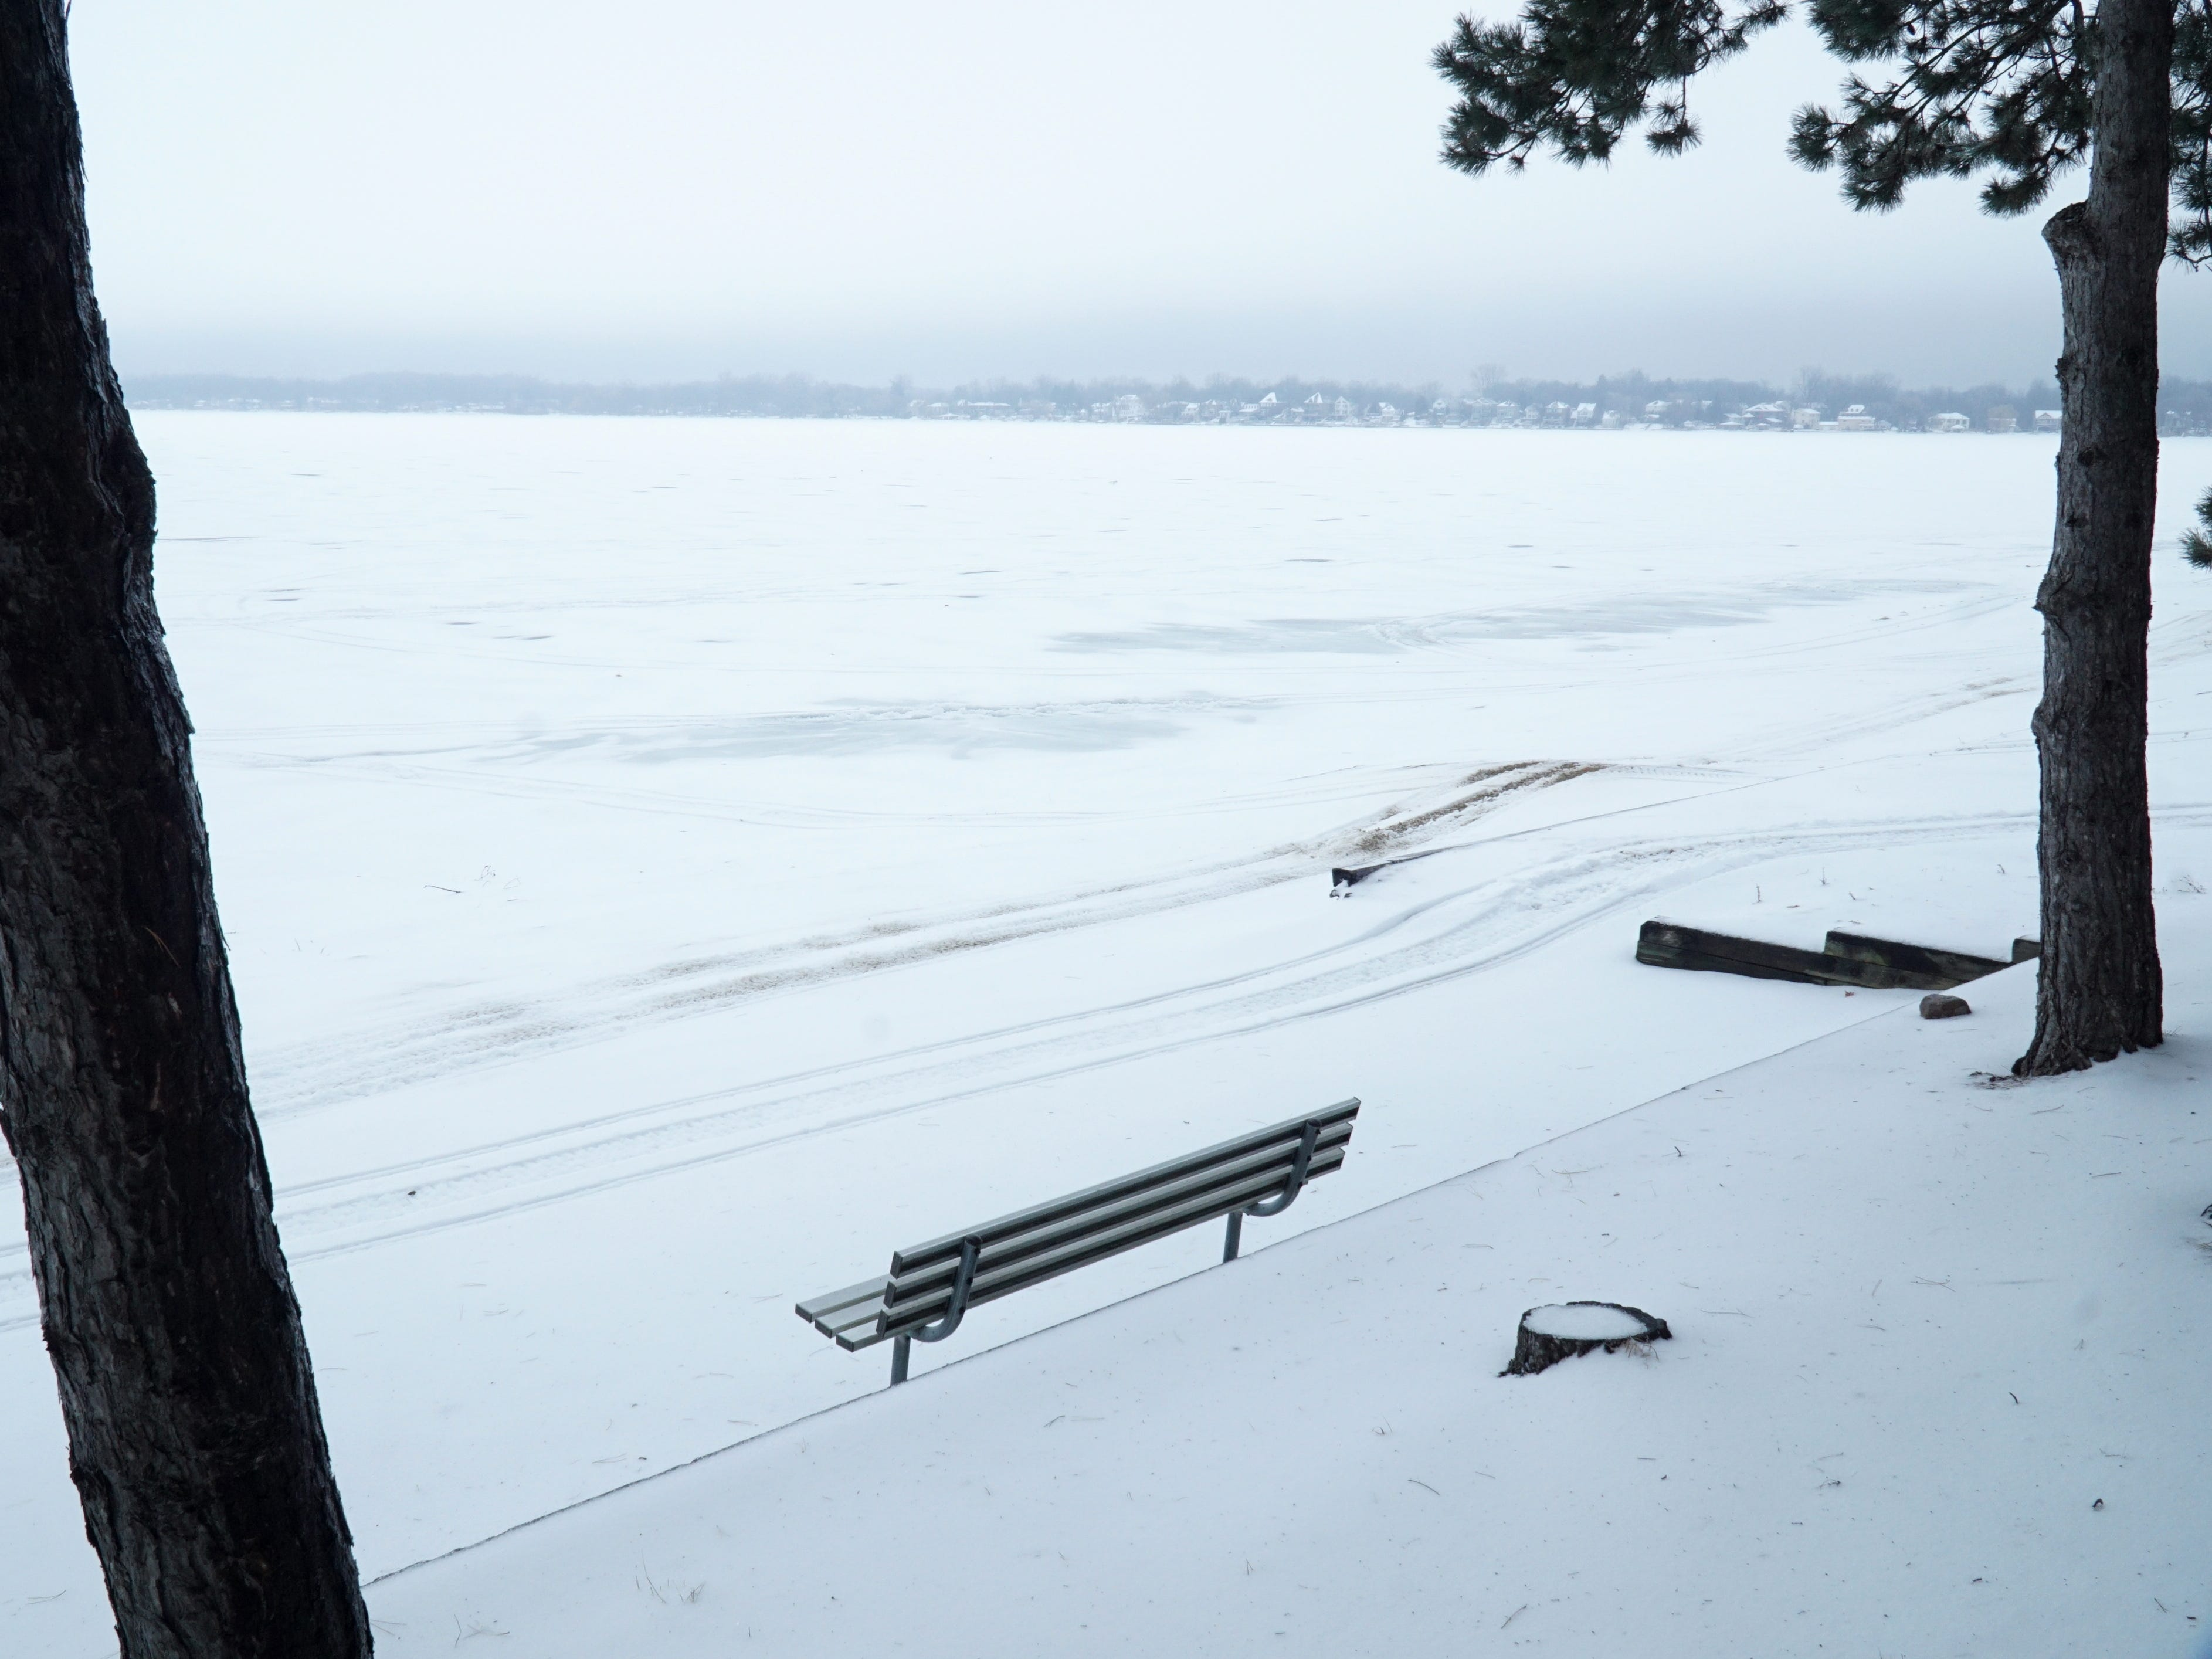 The south end of Walled Lake beckons to anyone who wants to hang out on its huge ice-covered surface on Feb. 12. There weren't many people on the lake that day, just a few ice fishermen on its north side.